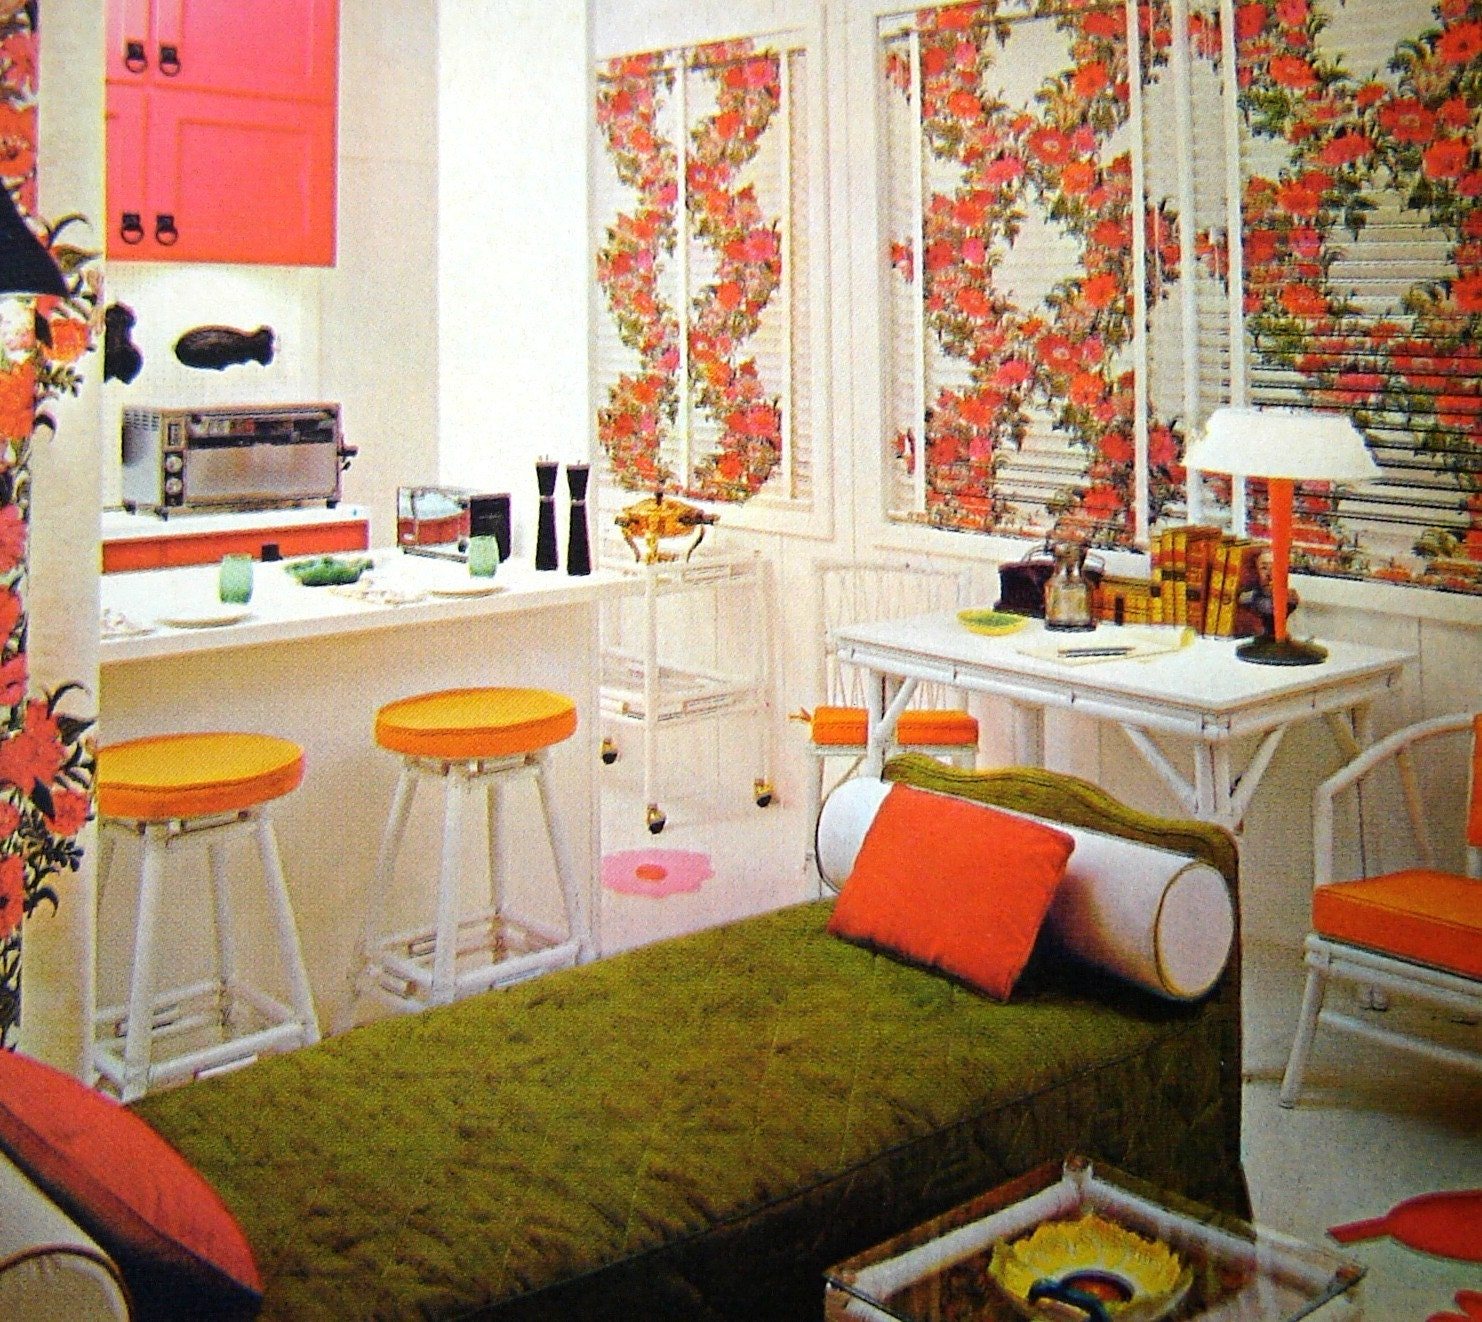 Vintage 1968 mod interior design book for 40s room decor